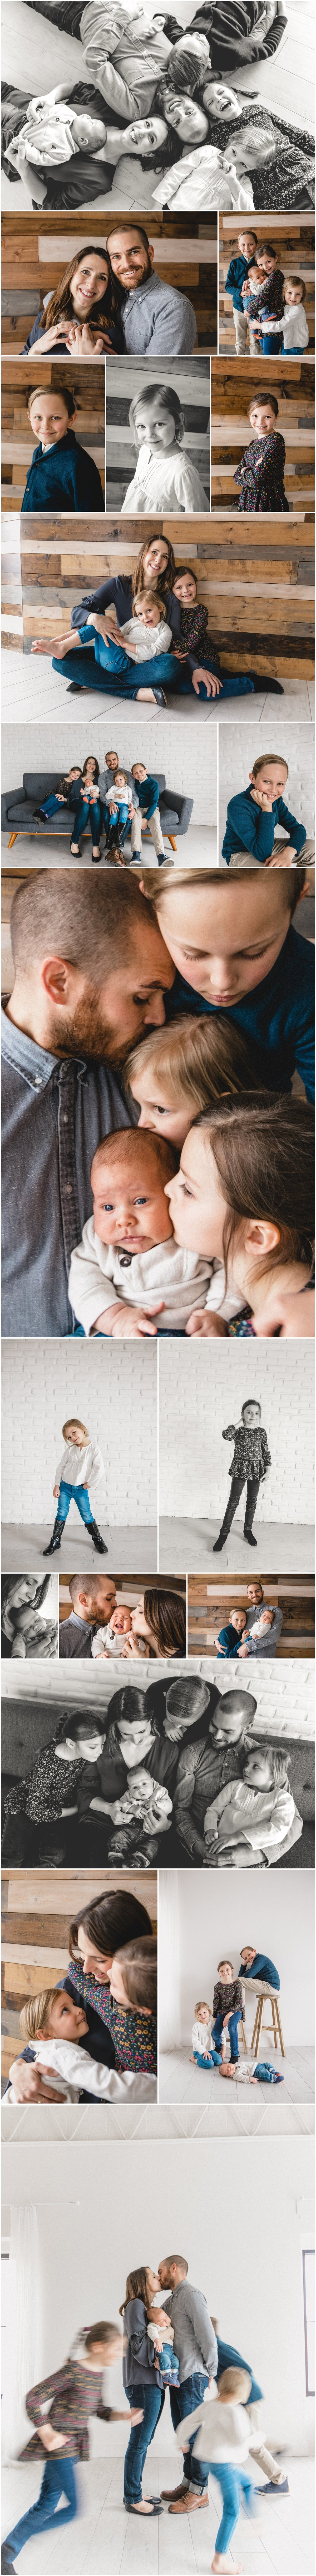 Family Photographer Utah County Life Looks Photography Kylie Hoschouer_0174